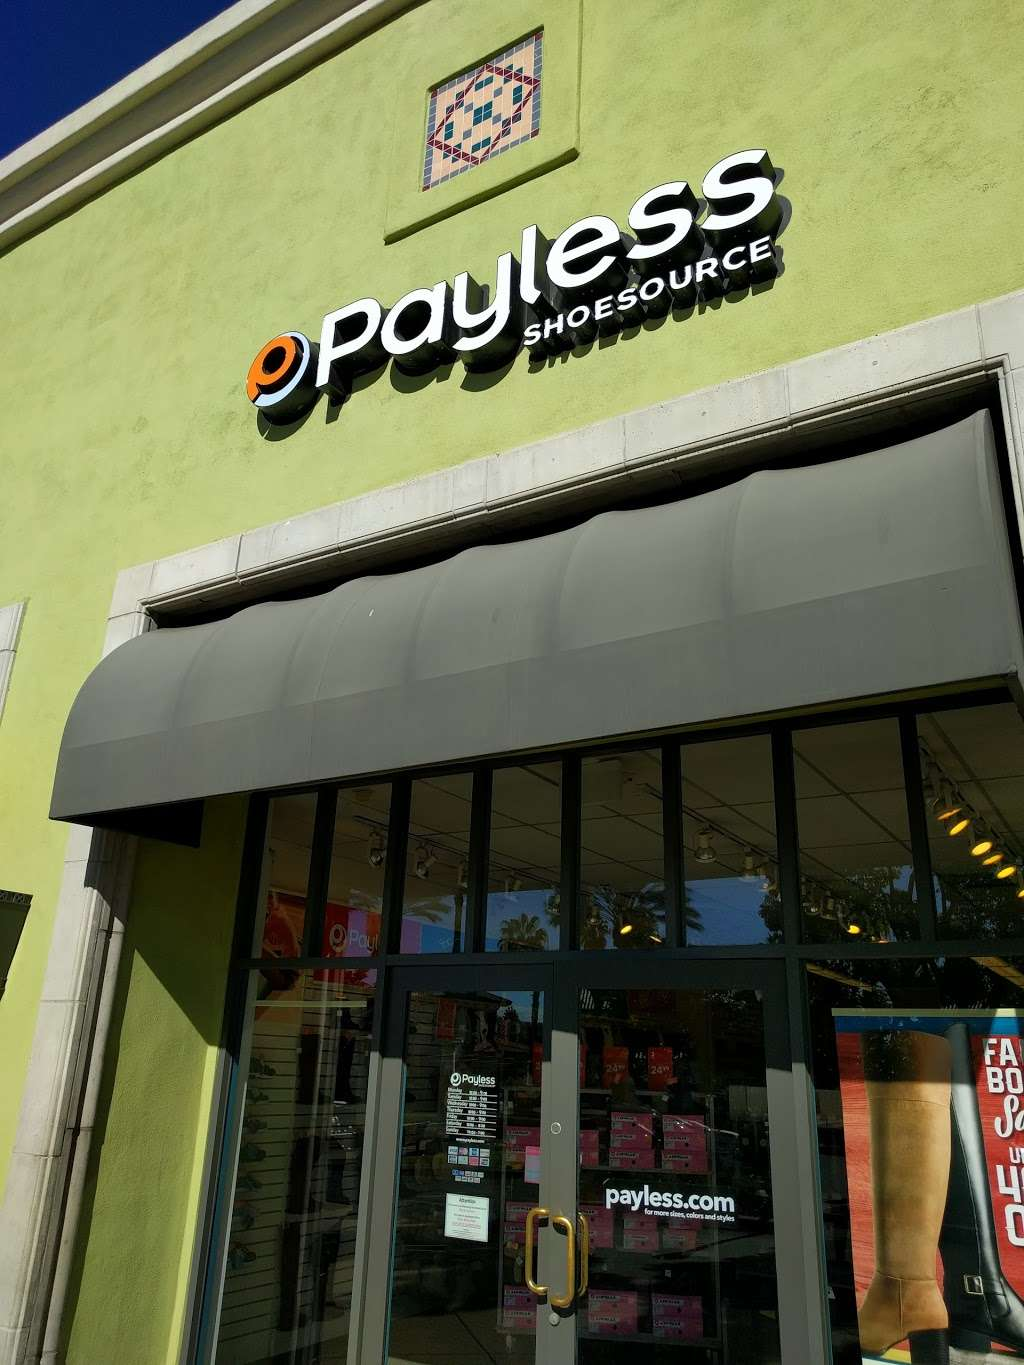 Payless ShoeSource - shoe store  | Photo 2 of 4 | Address: 10730 E Foothill Blvd Ste 130, Rancho Cucamonga, CA 91730, USA | Phone: (909) 980-5960